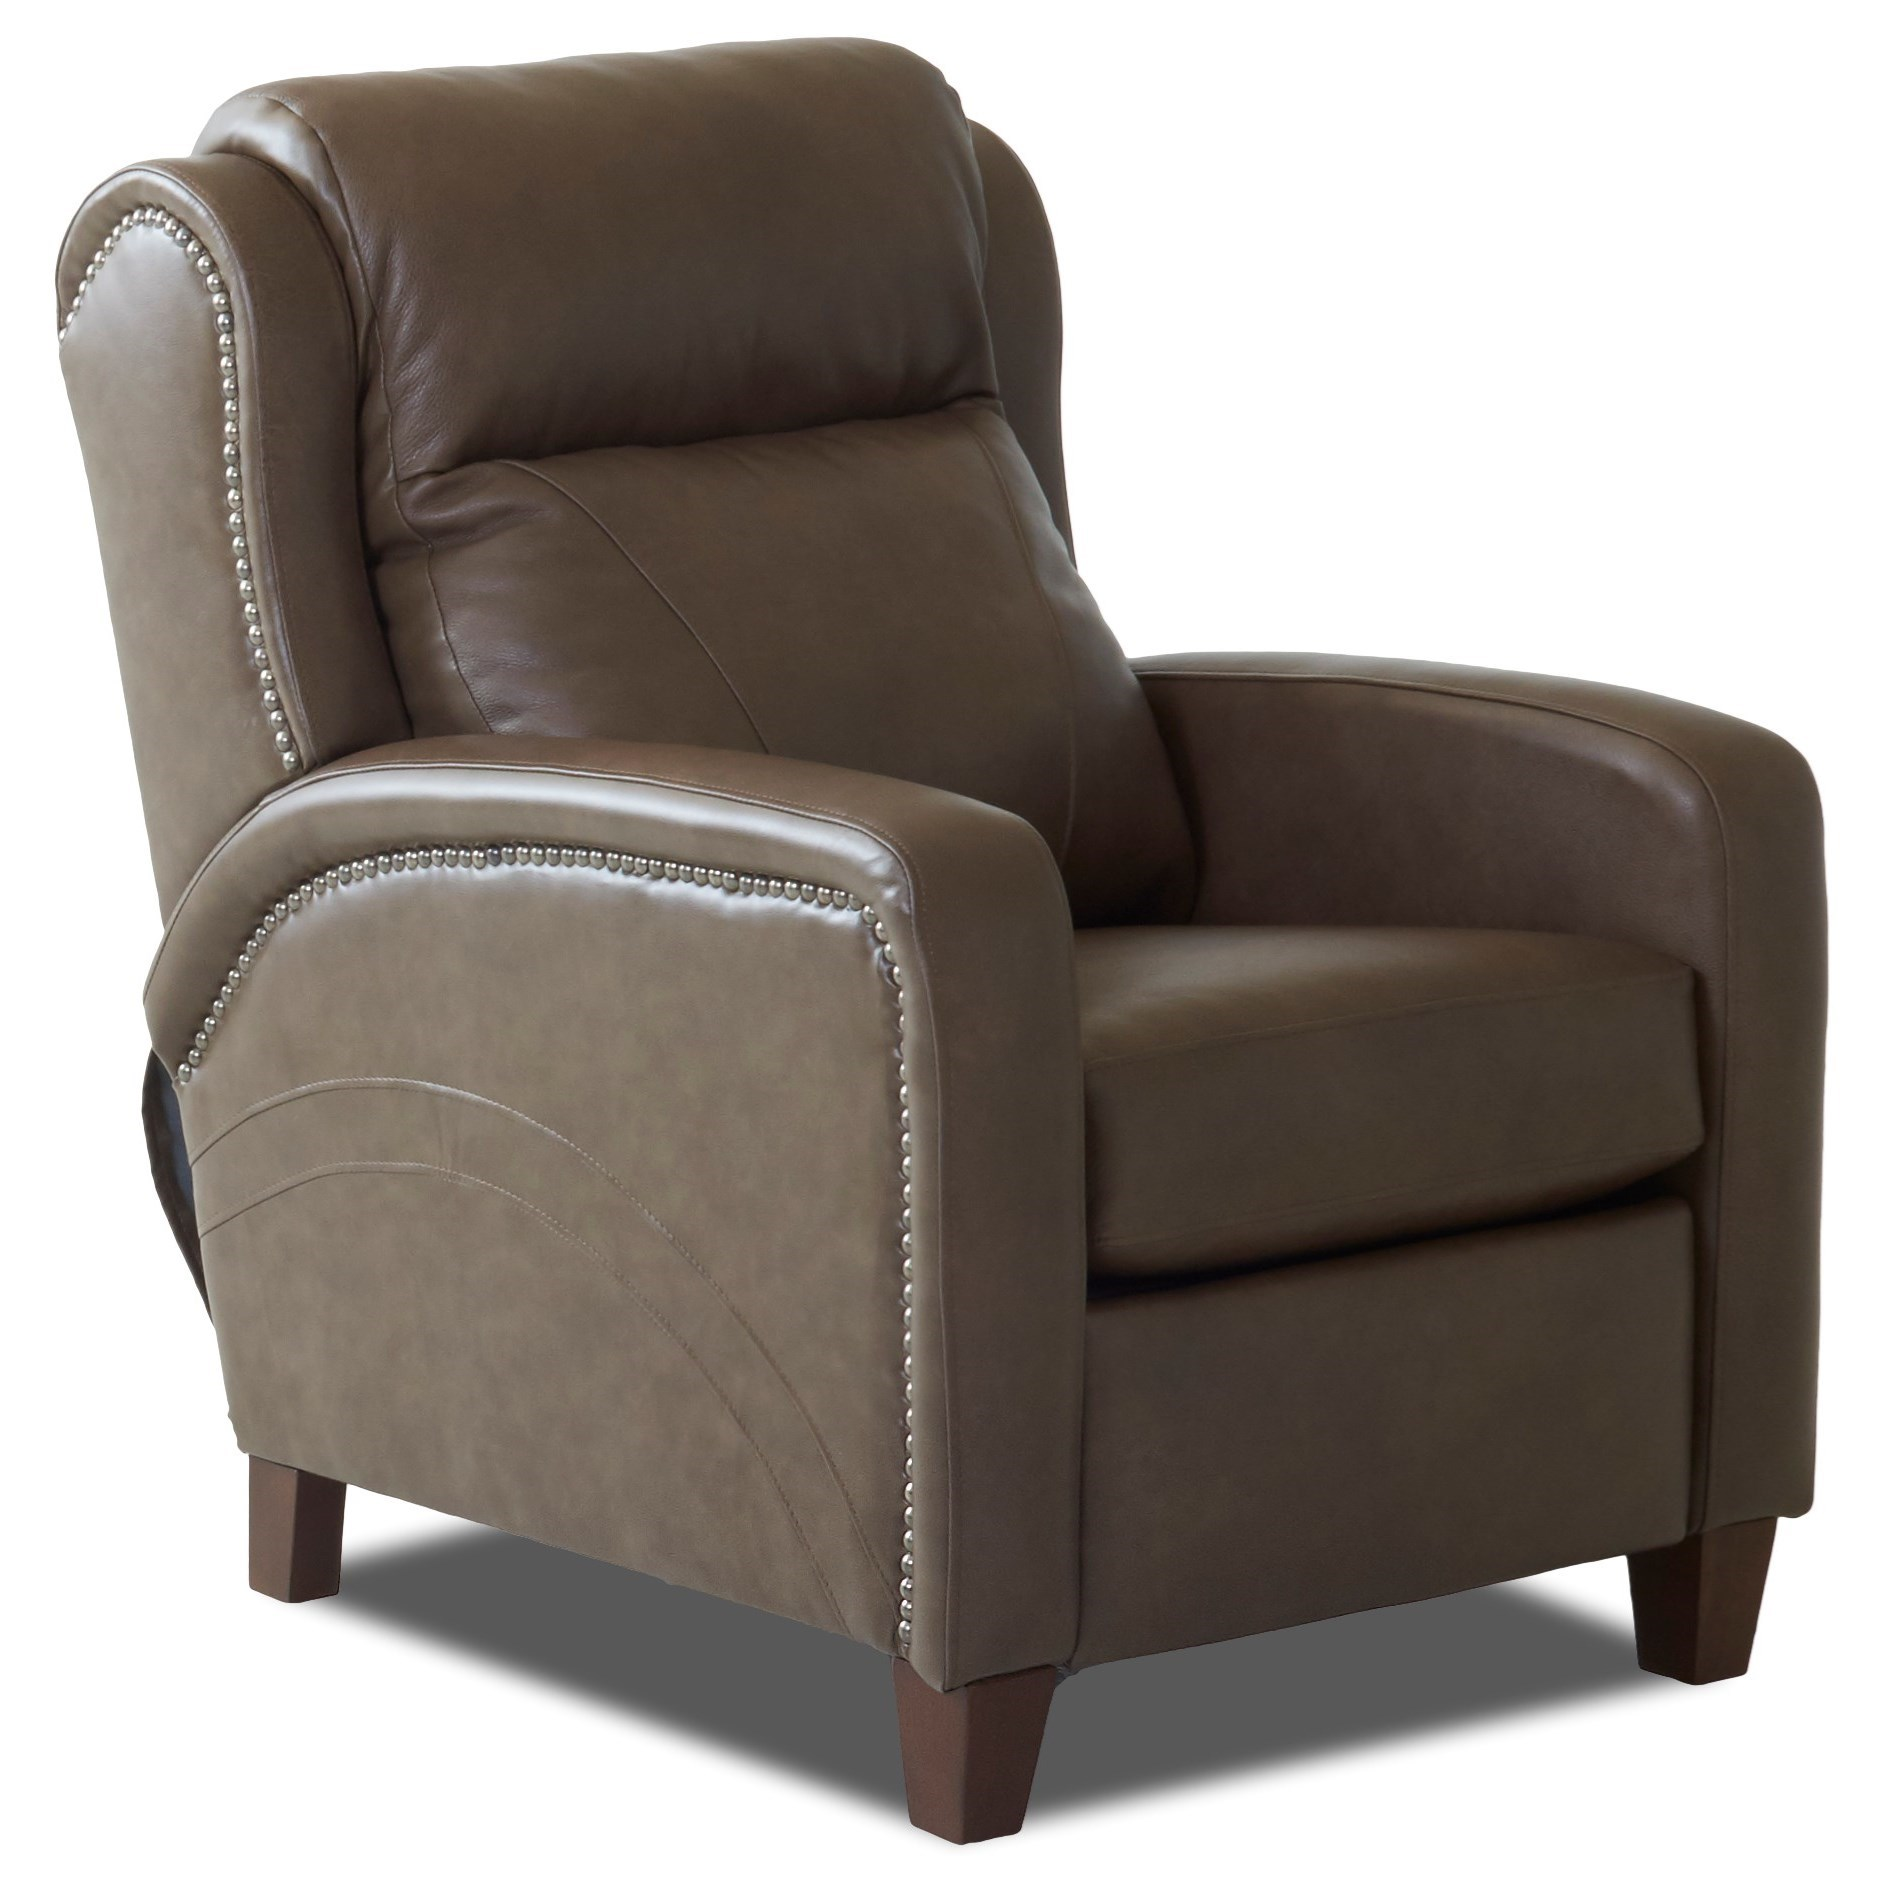 Power Recliner w/ Nails and Pwr Head & Lumba